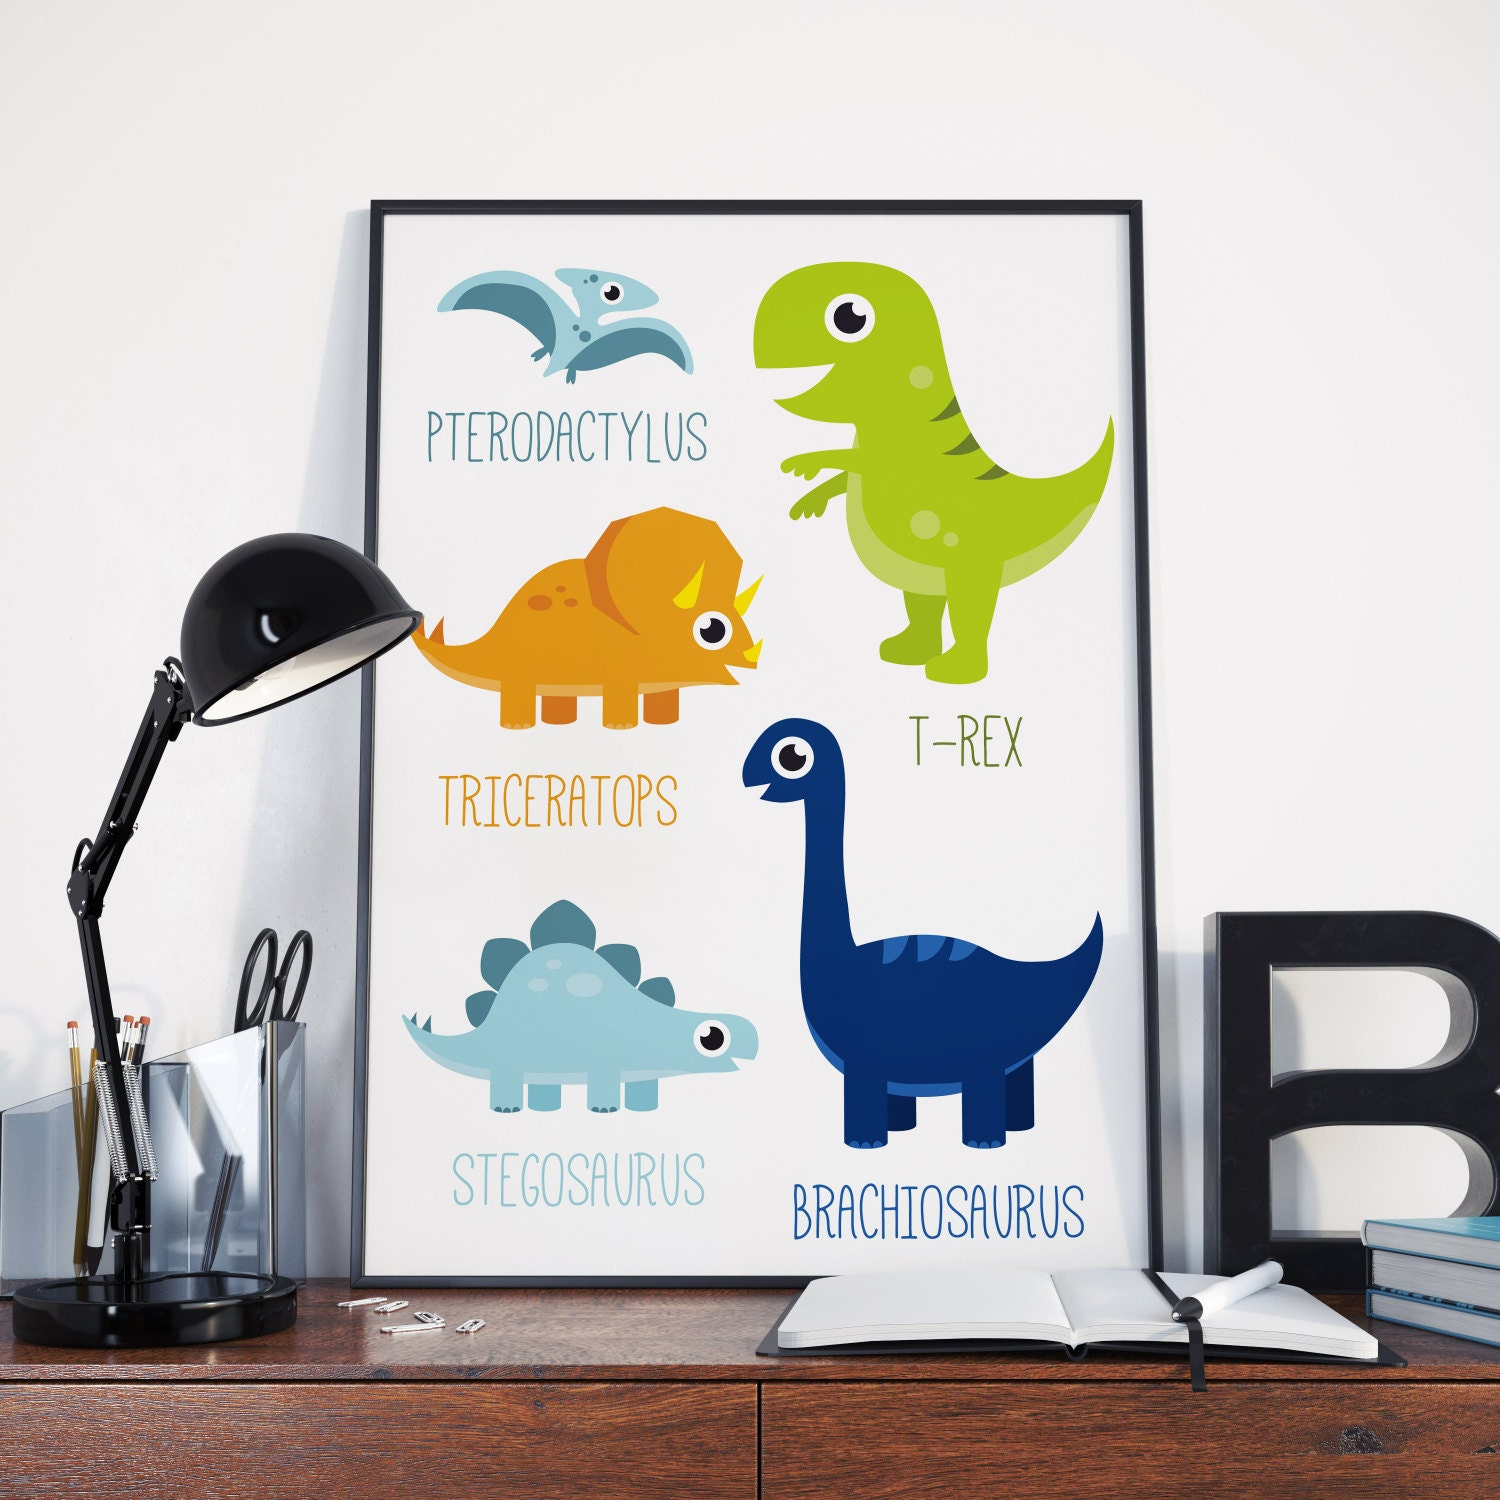 d ideas famed with baby decor decorations bedrooms popular dinosaur room dw wells bedroom stickers med together wall corner as